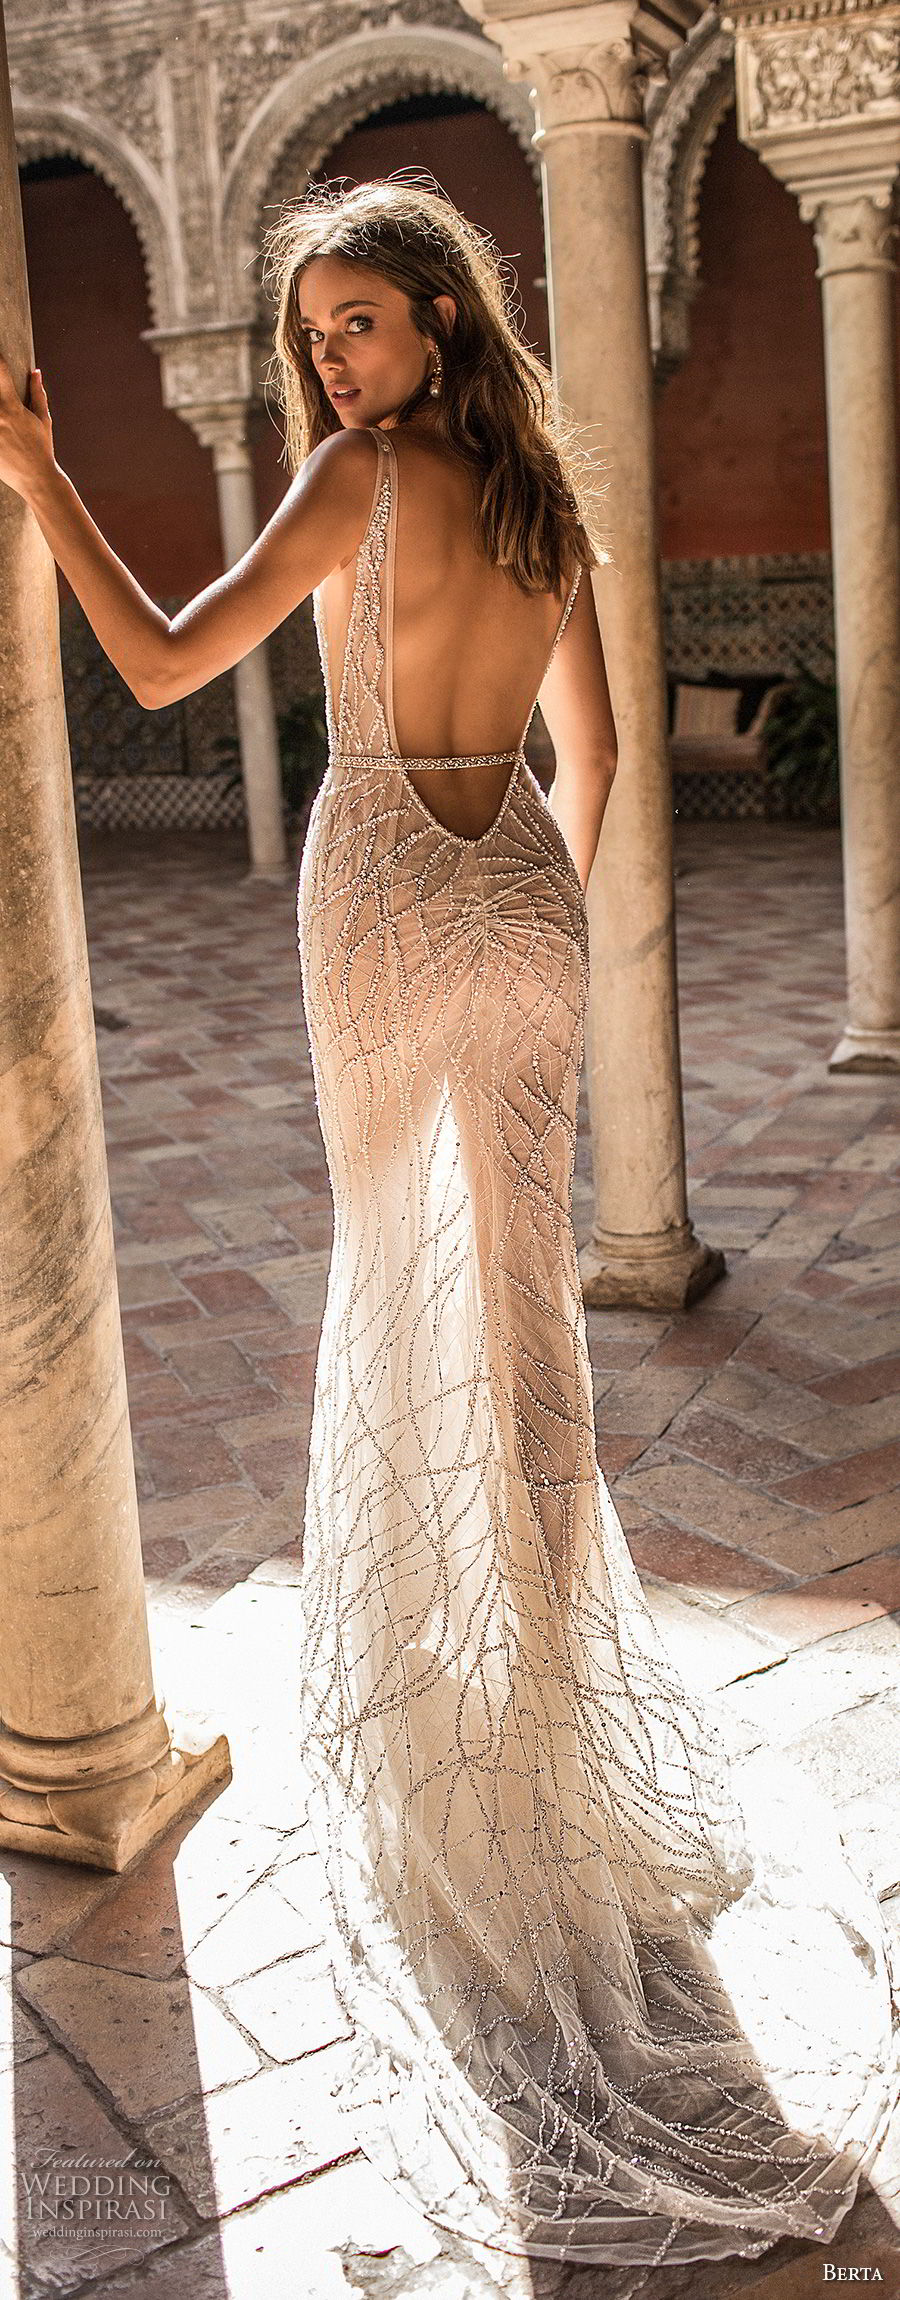 berta fall 2018 bridal sleeveless deep v neck full beaded embellishment elegant glamorous sheath wedding dress low open back sweep train (13) bv